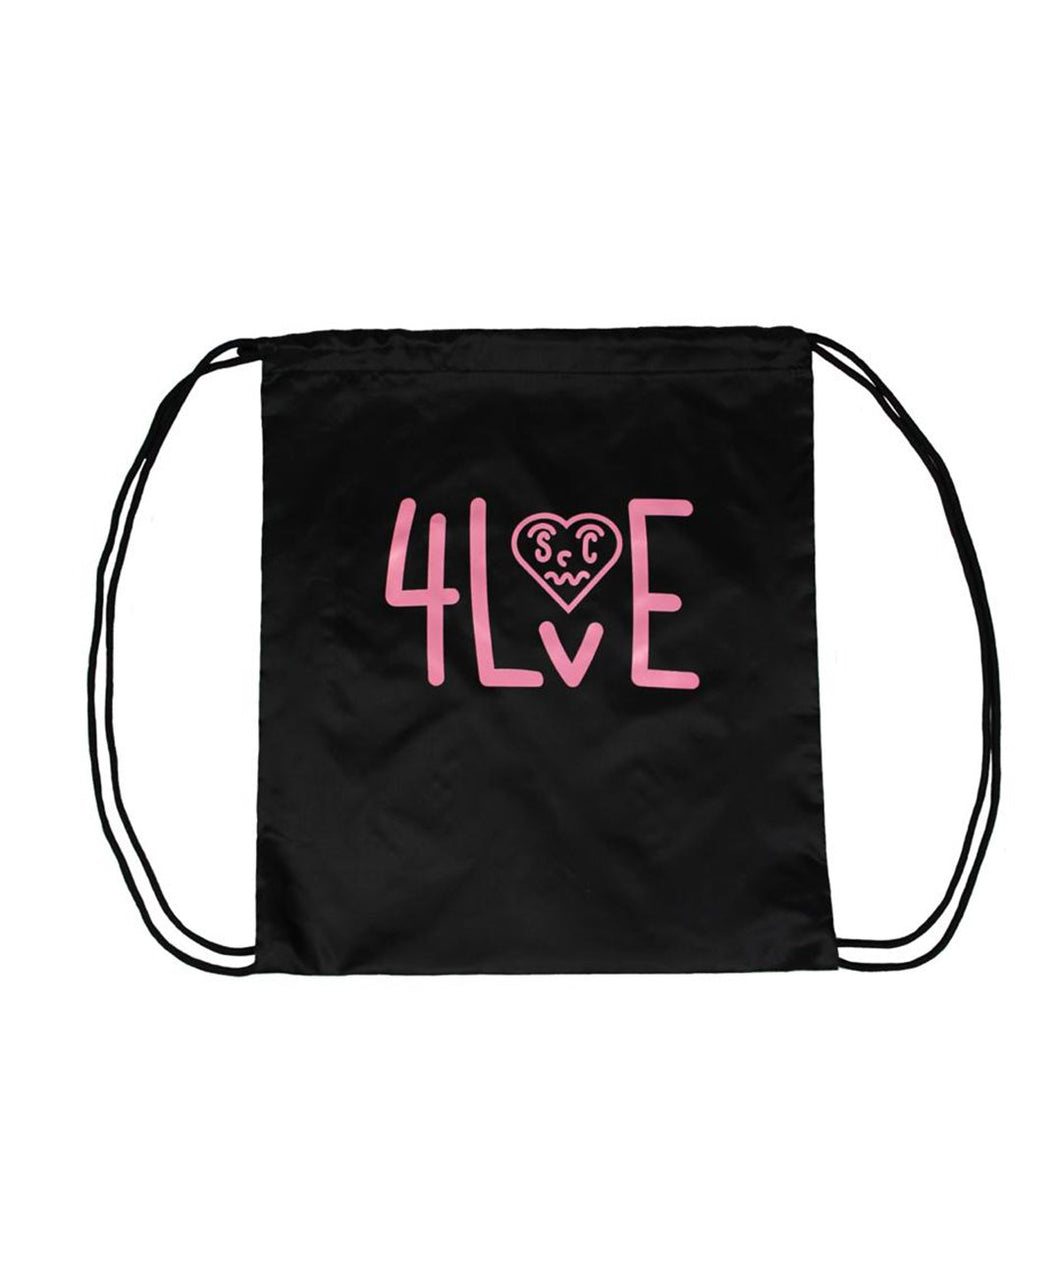 4L Drawstring bag - B1G1 50% Off!